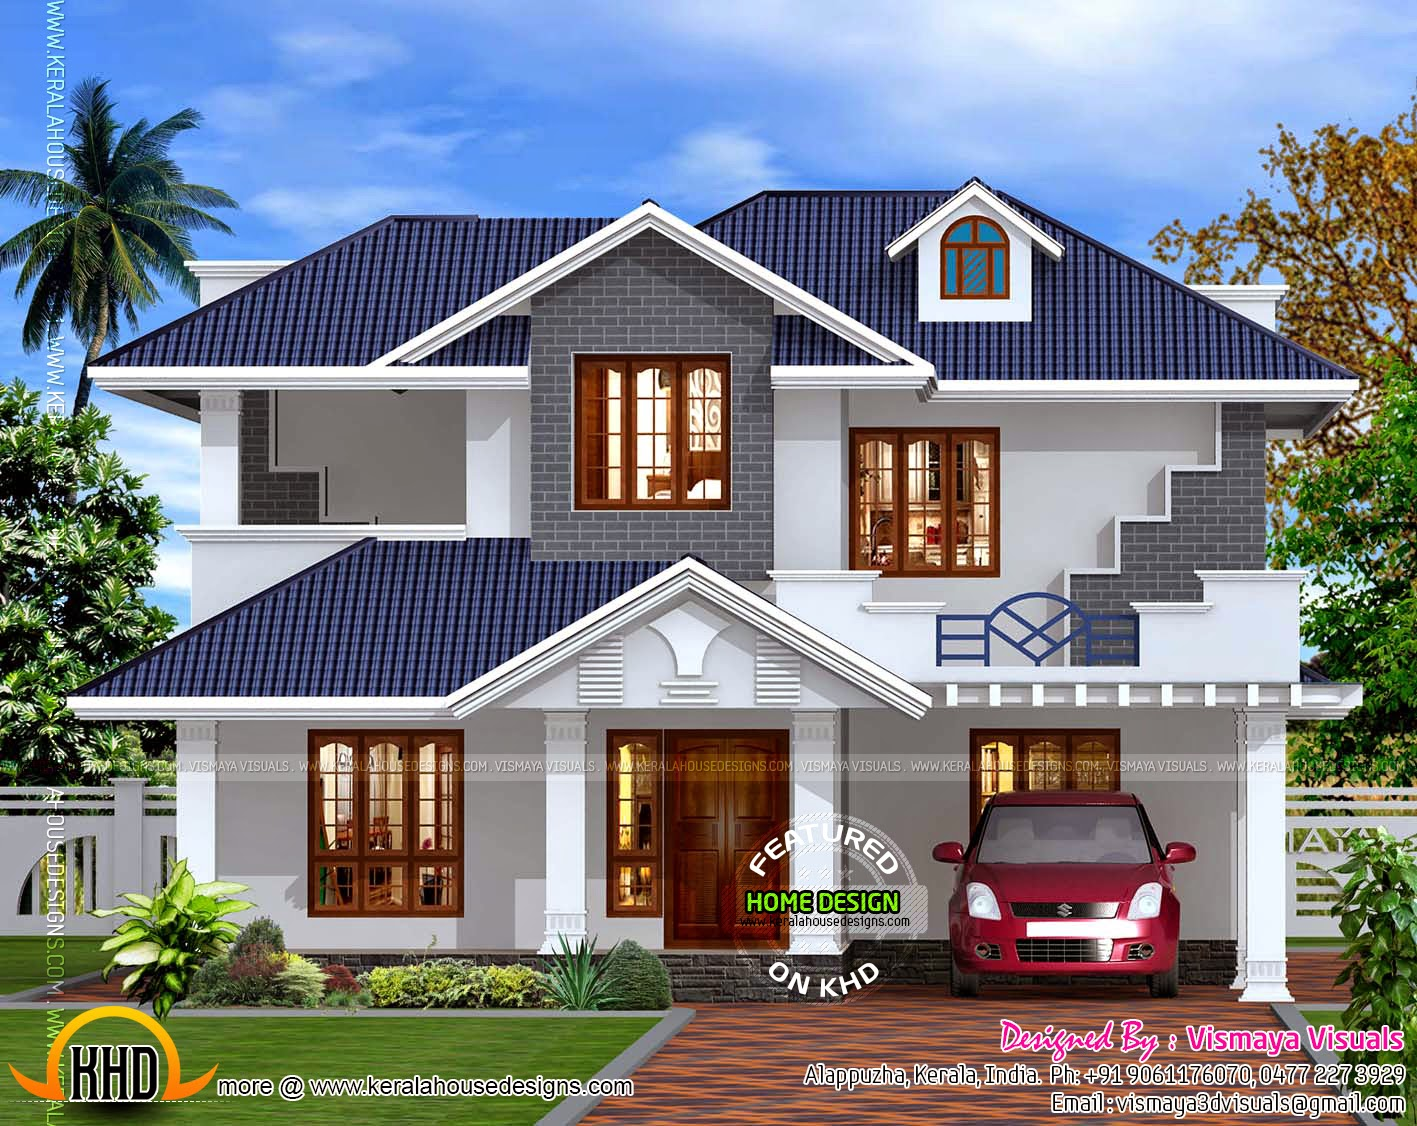 Kerala style villa exterior kerala home design and floor for Sloped roof house plans in india